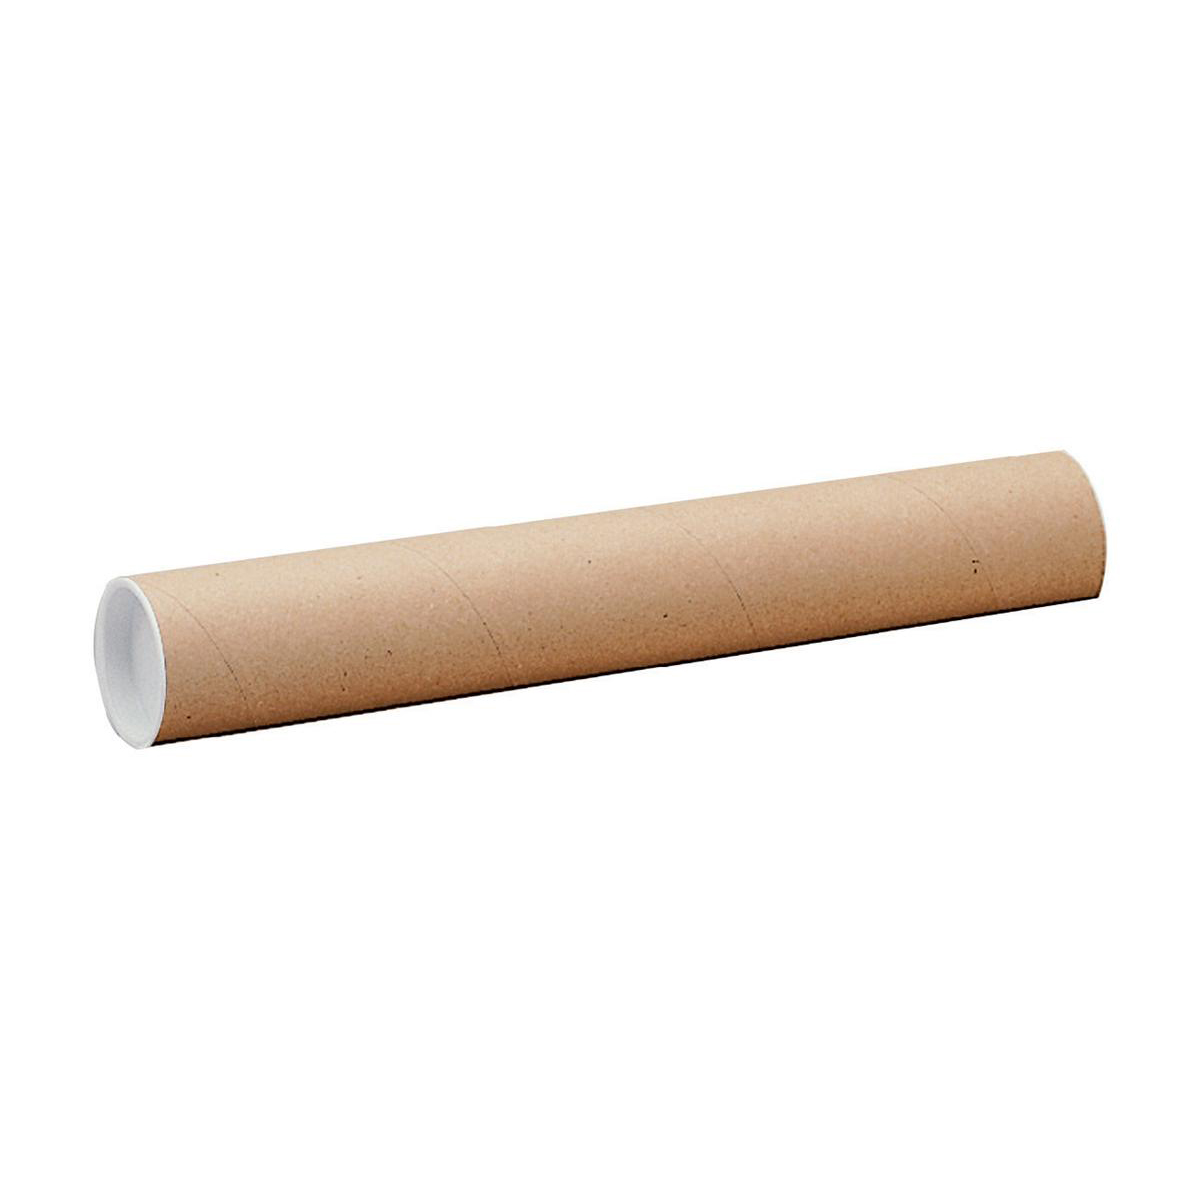 Image for Postal Tube Cardboard with Plastic End CapsA1 L625xDia.50mm [Pack 25]